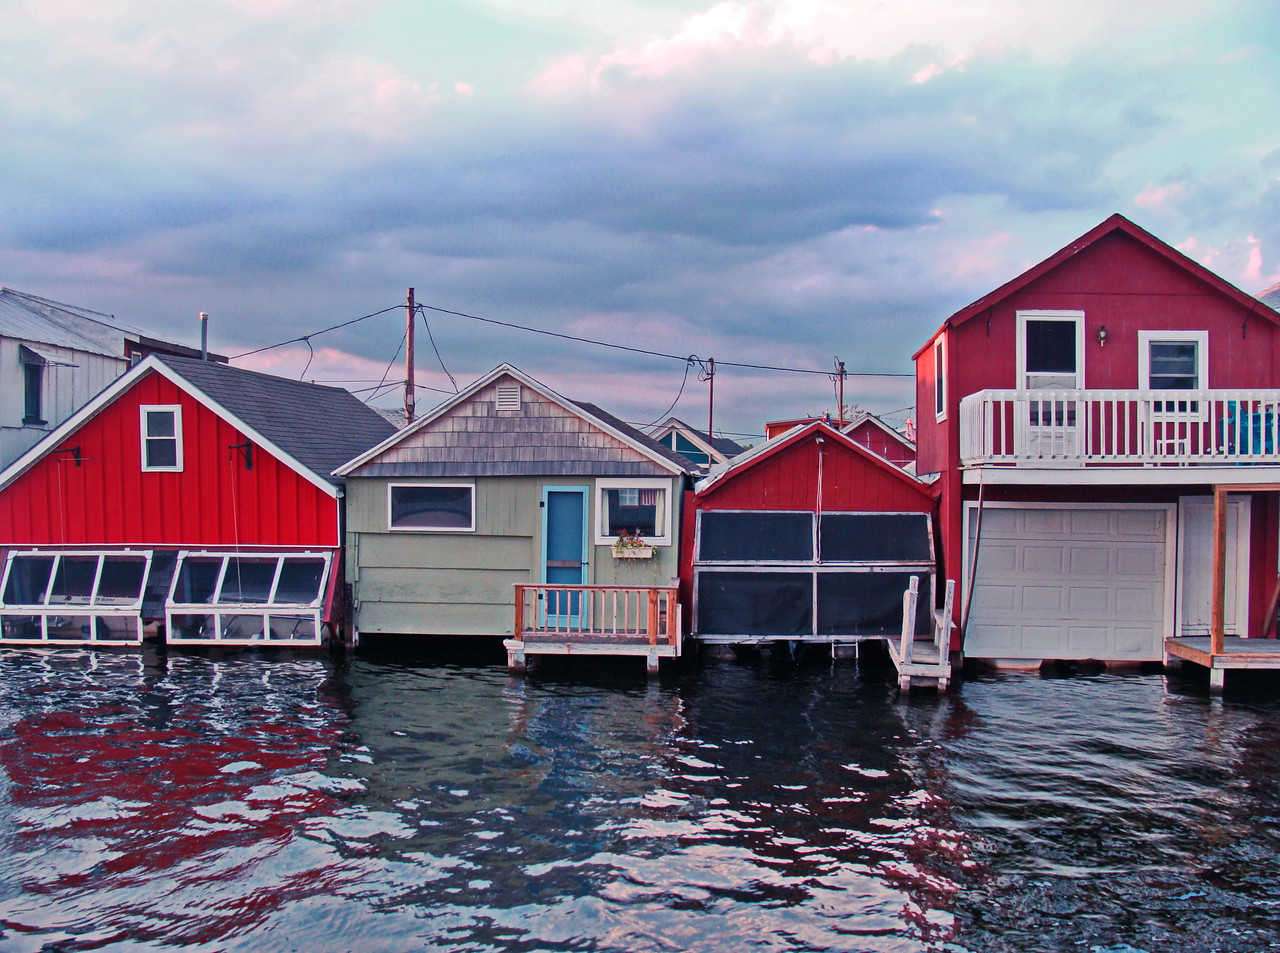 Canandaigua Lake Boat Houses